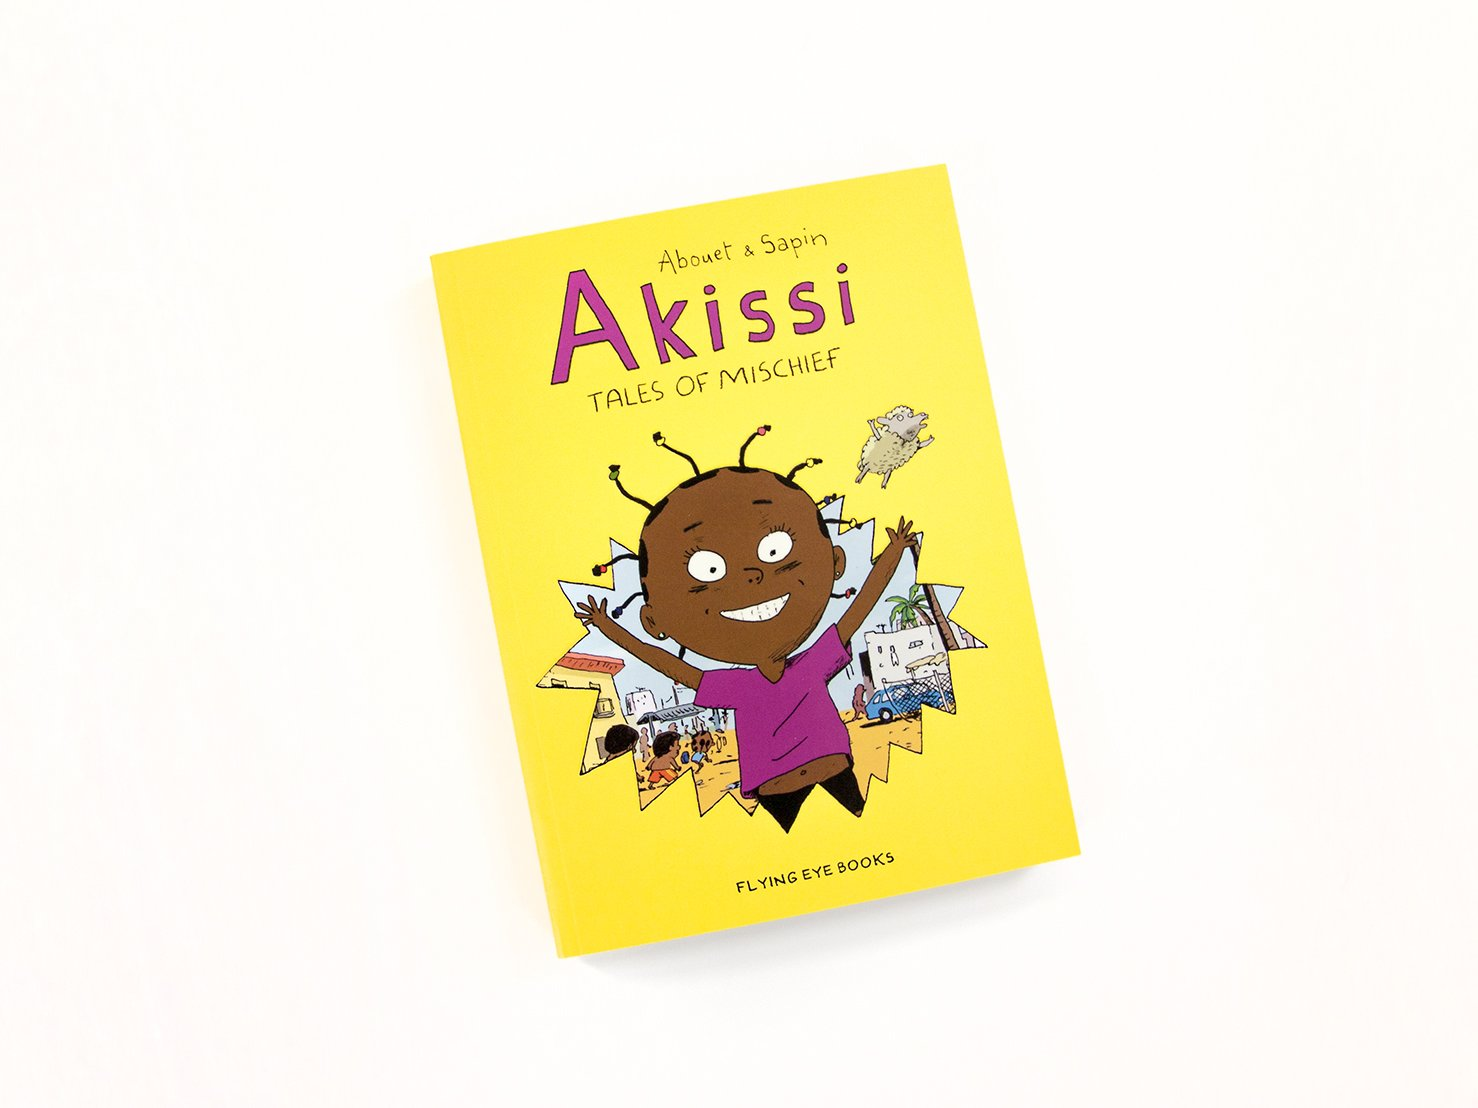 Akissi: Tales of Mischief [Graphic Novel] by Flying Eye Books (Image #4)